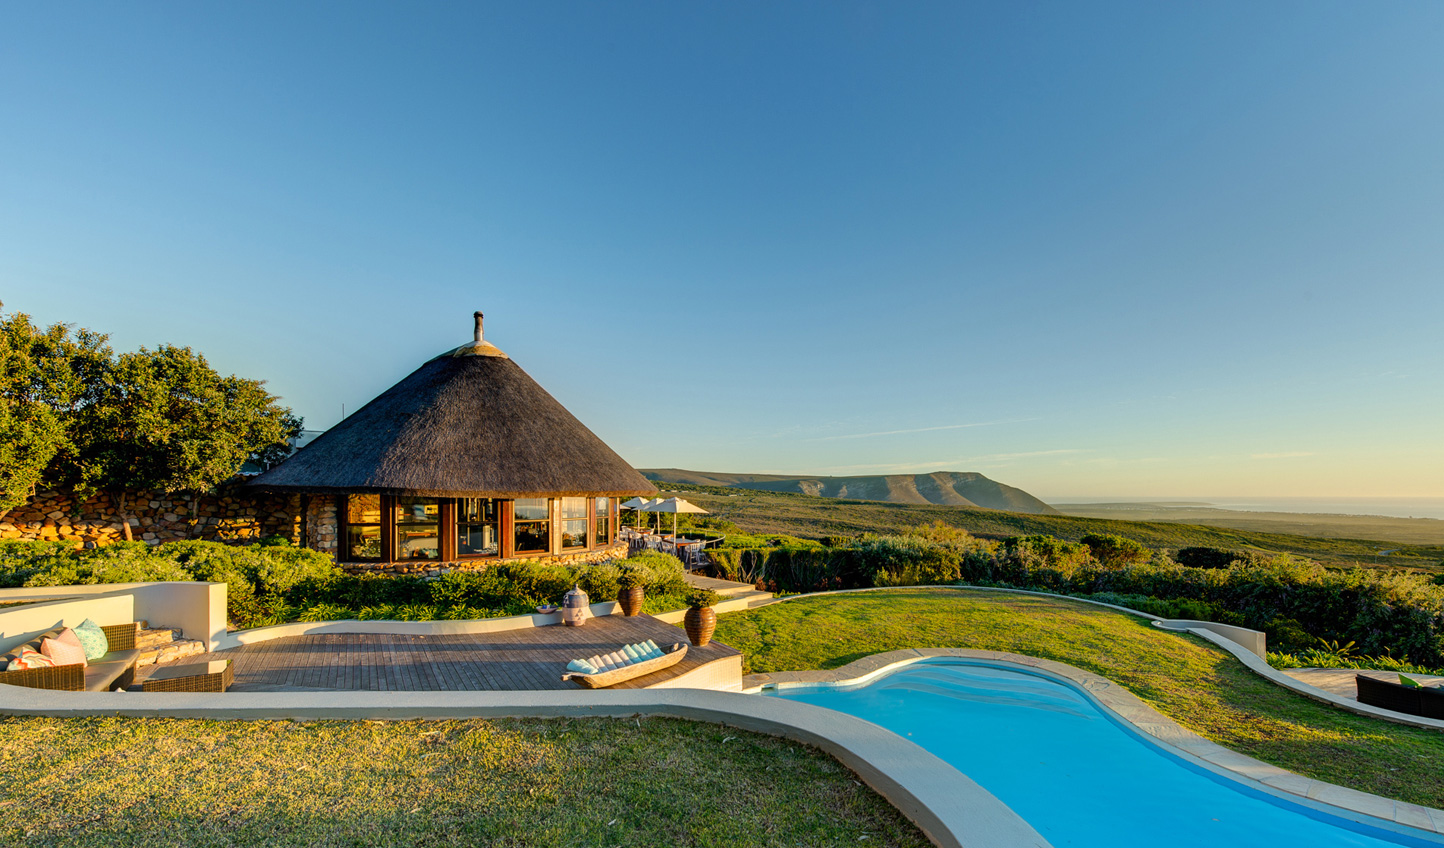 Relax by the pool in the sanctuary of Grootbos